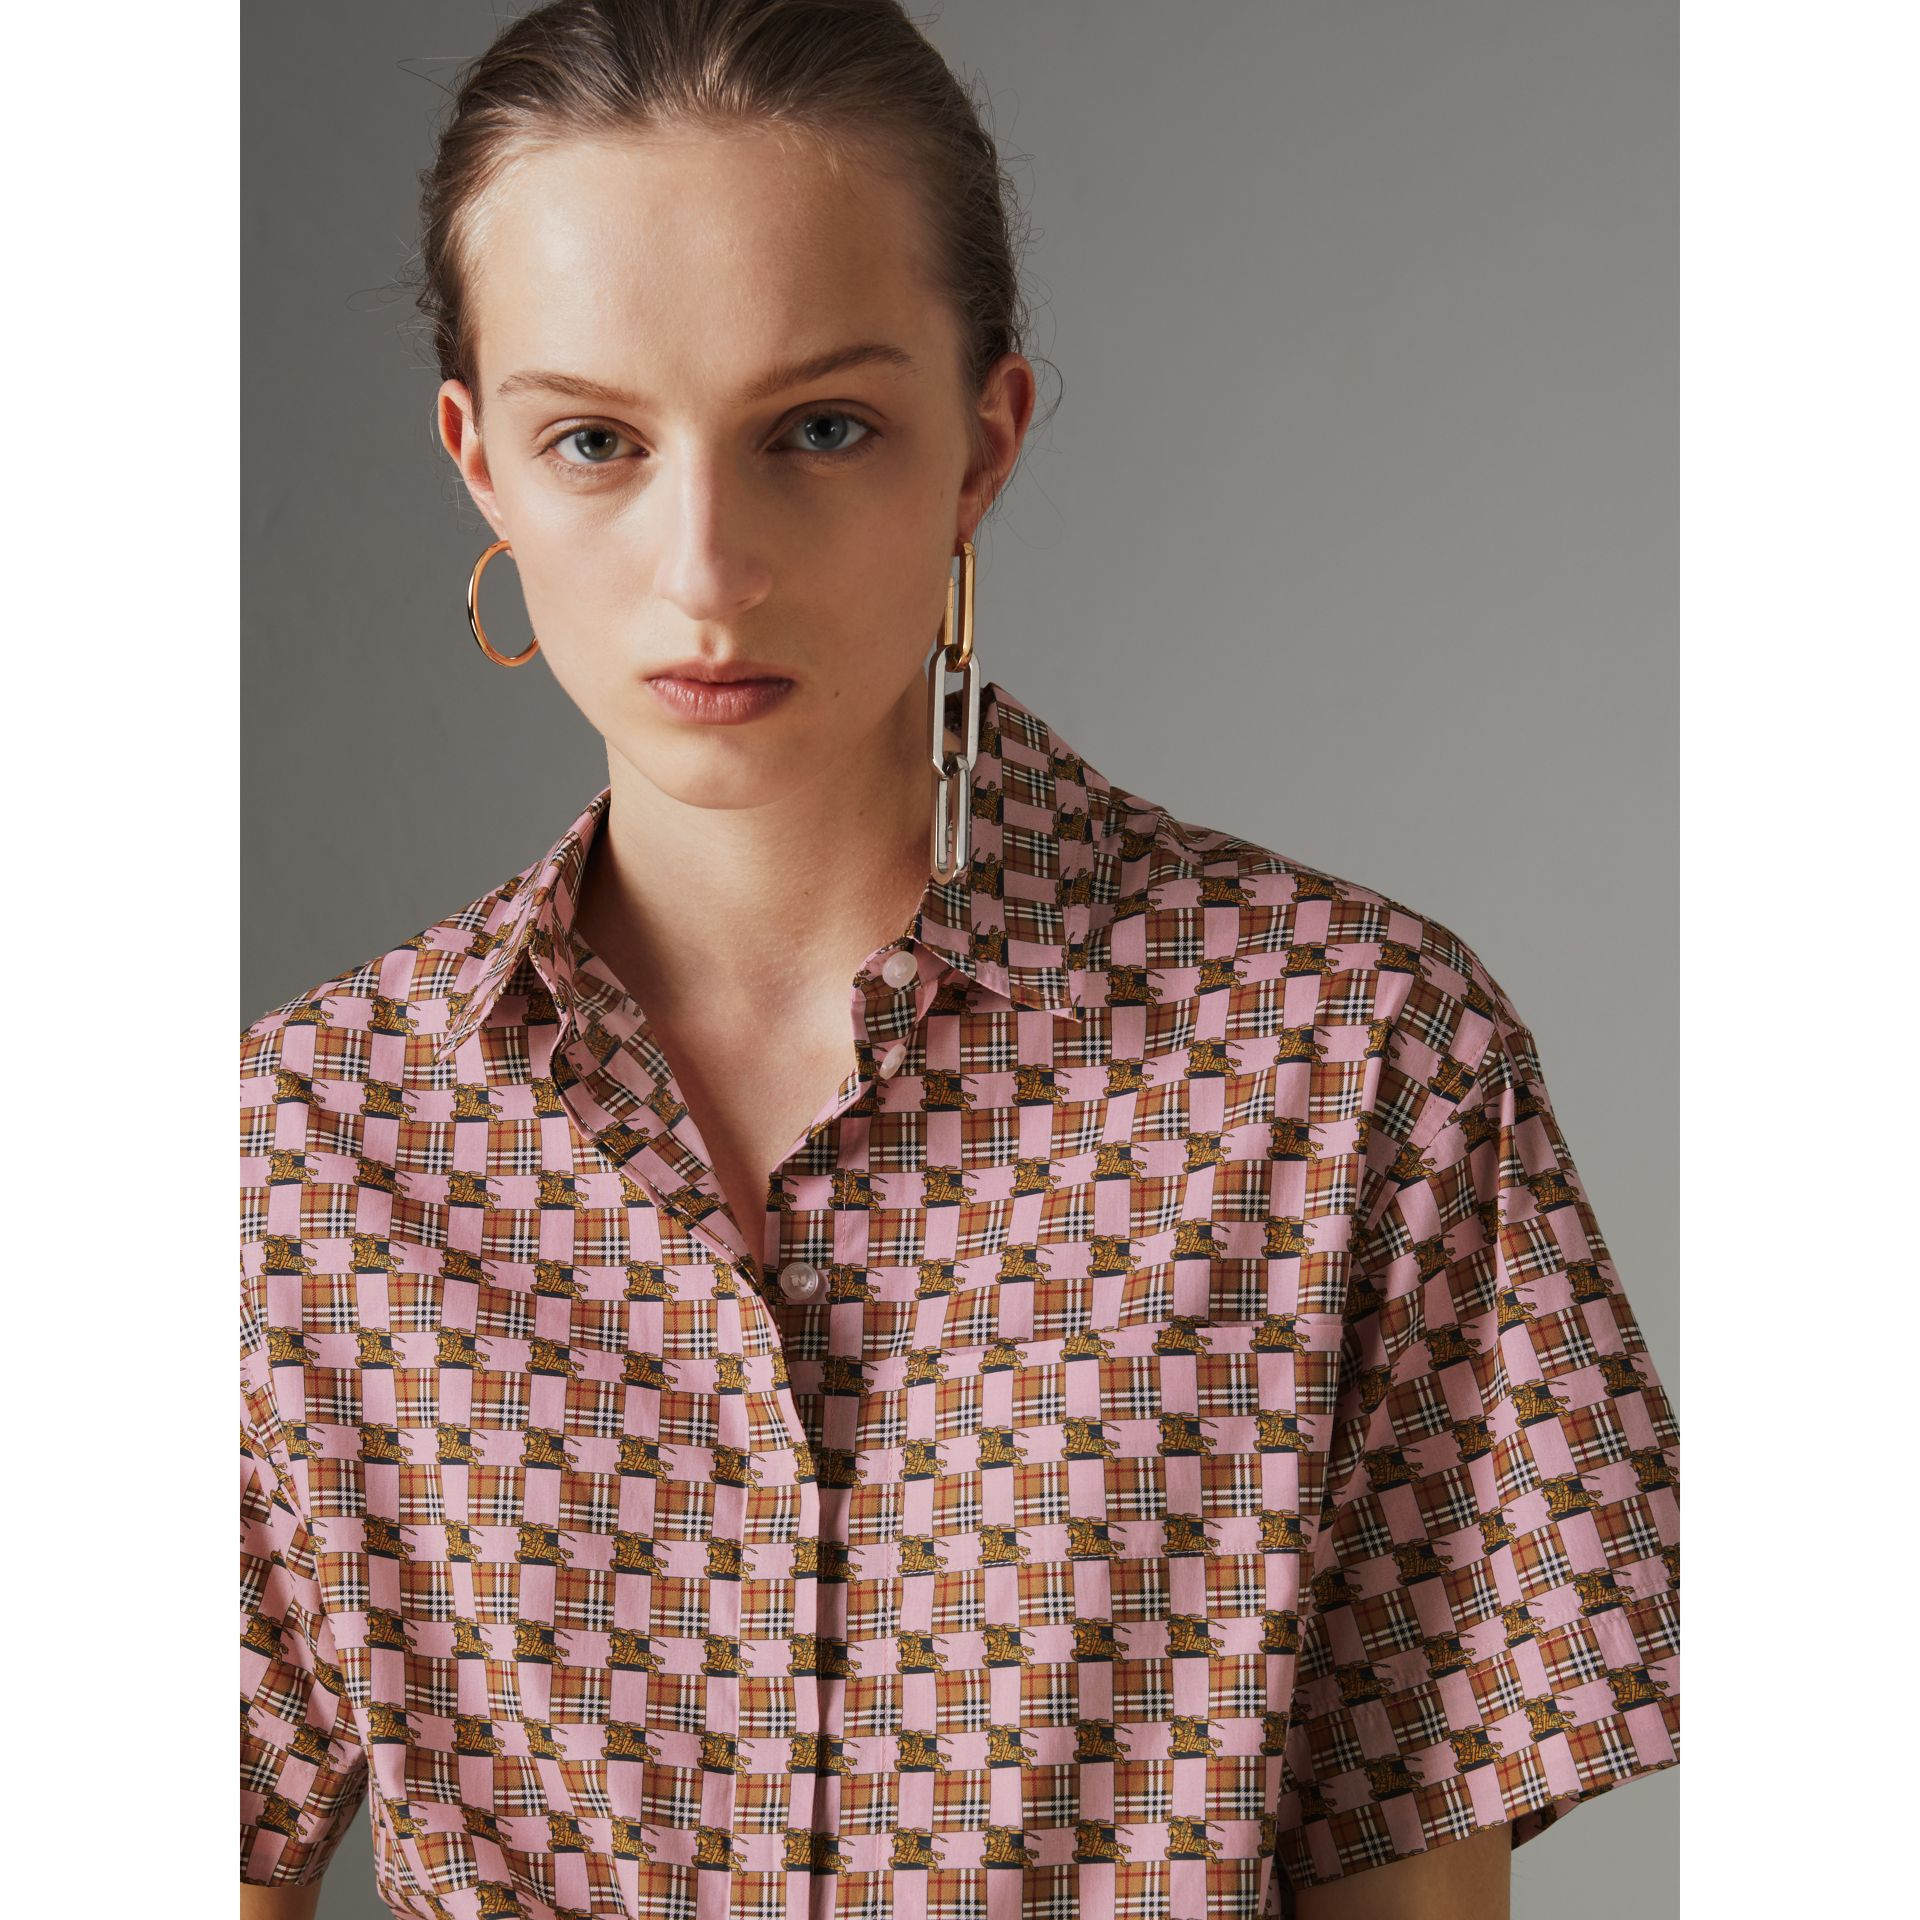 Short-sleeve Tiled Archive Print Cotton Shirt in Pink - Women | Burberry - gallery image 1